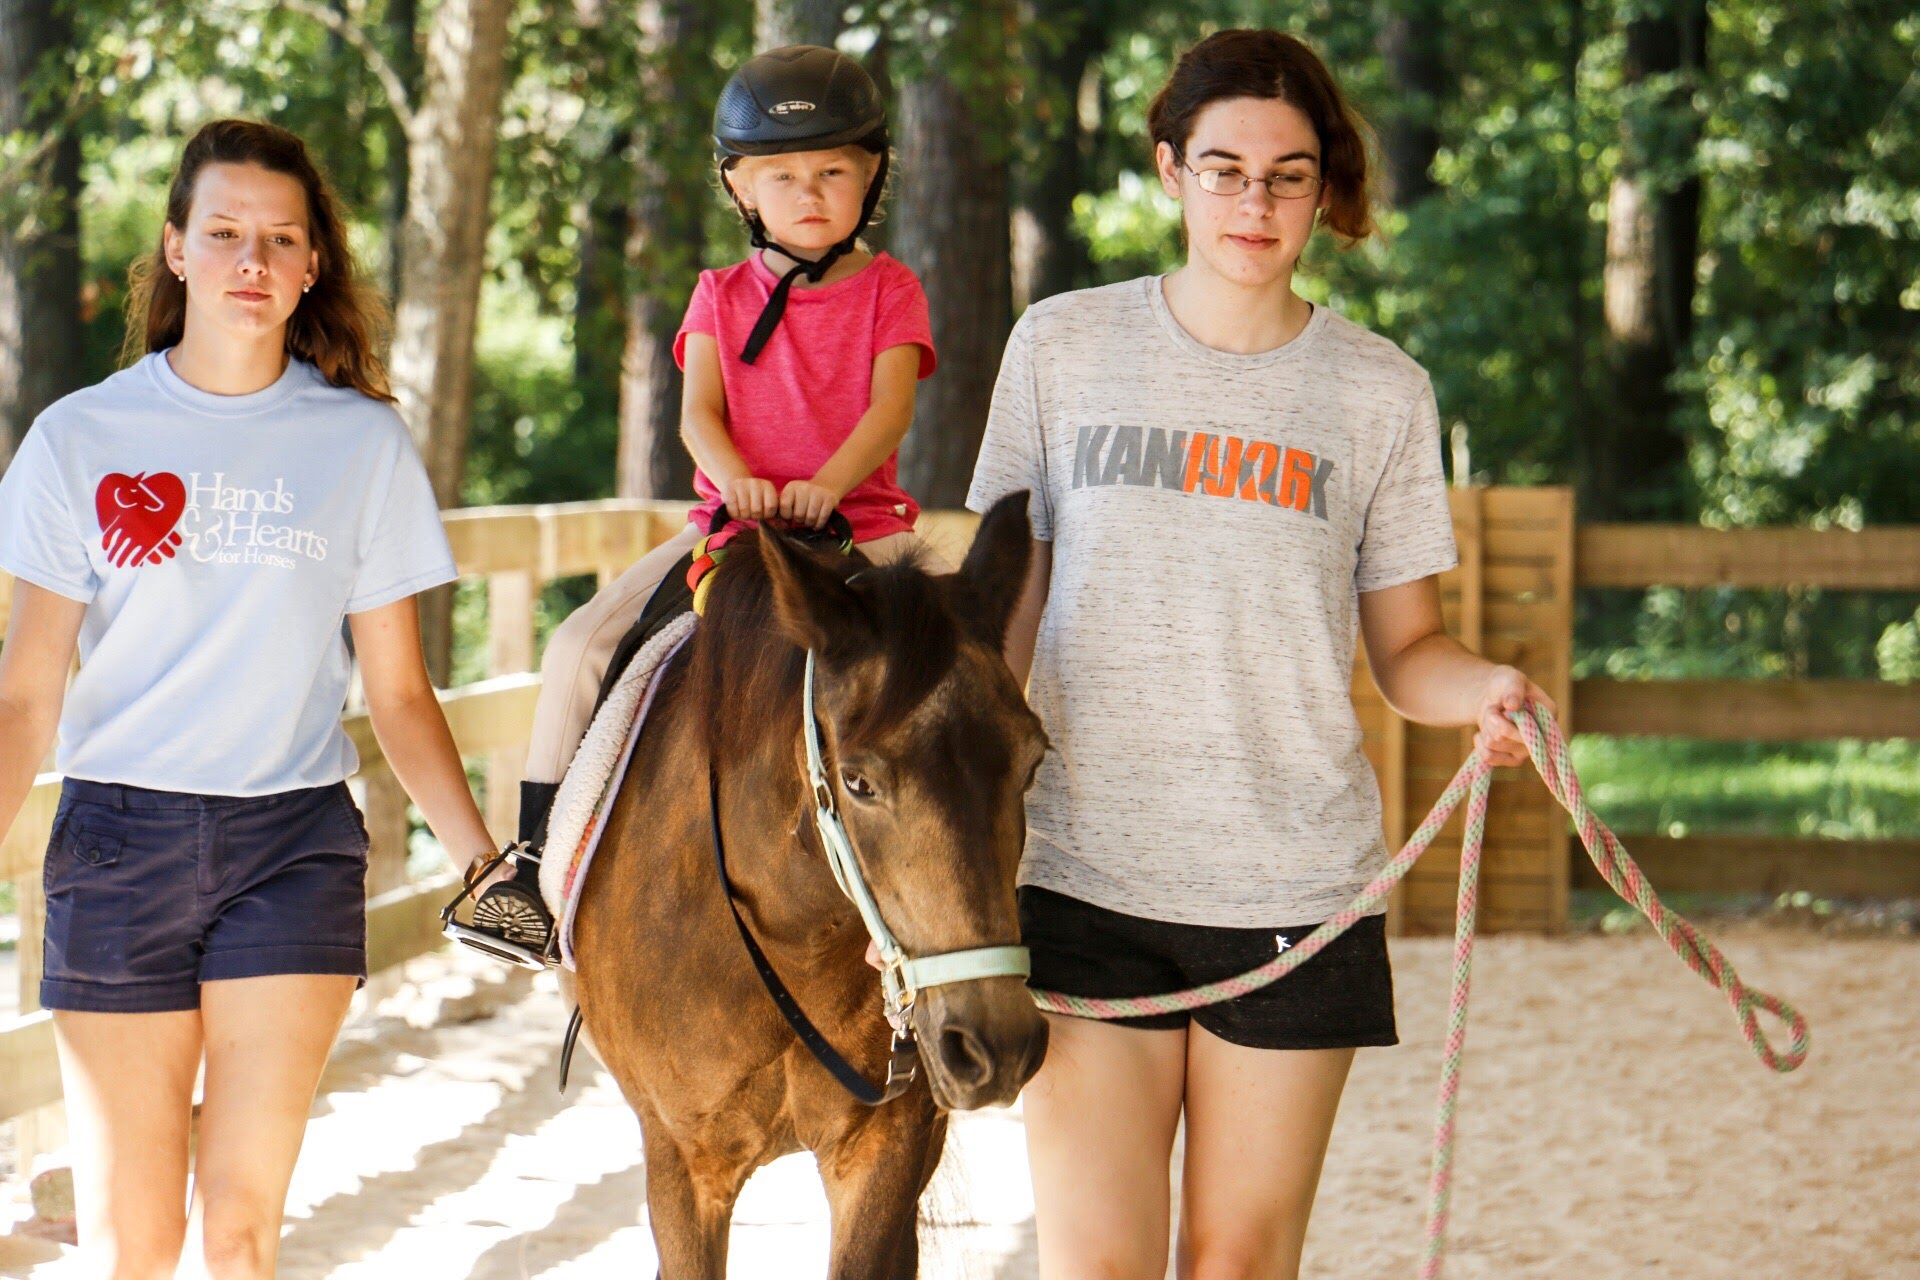 LESSON PROGRAMS - Volunteers assist by leading horses or walking beside riders (sidewalking) during classes. No horse experience is required! Lesson program volunteers should be willing to commit to coming the same day and time each week.